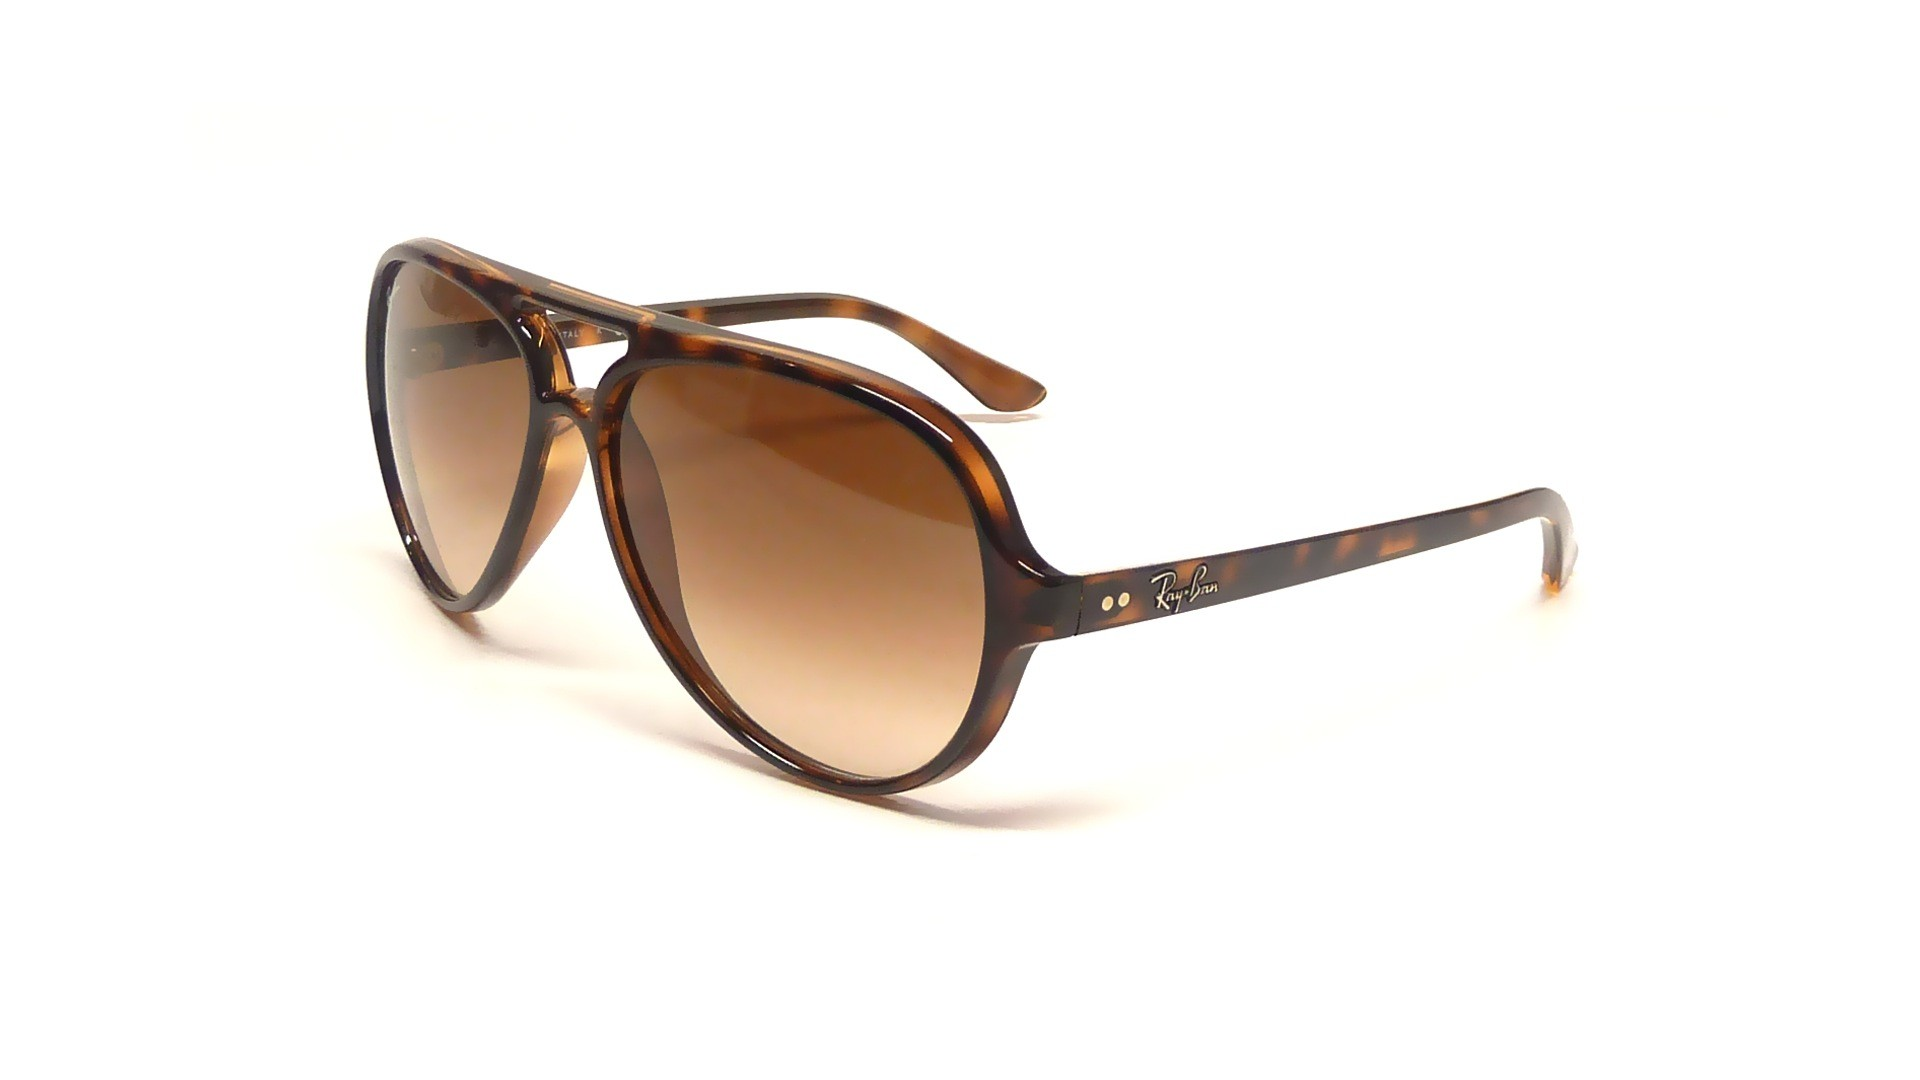 75b43423a11 Ray-Ban Cats 5000 Tortoise RB4125 710 51 59-15